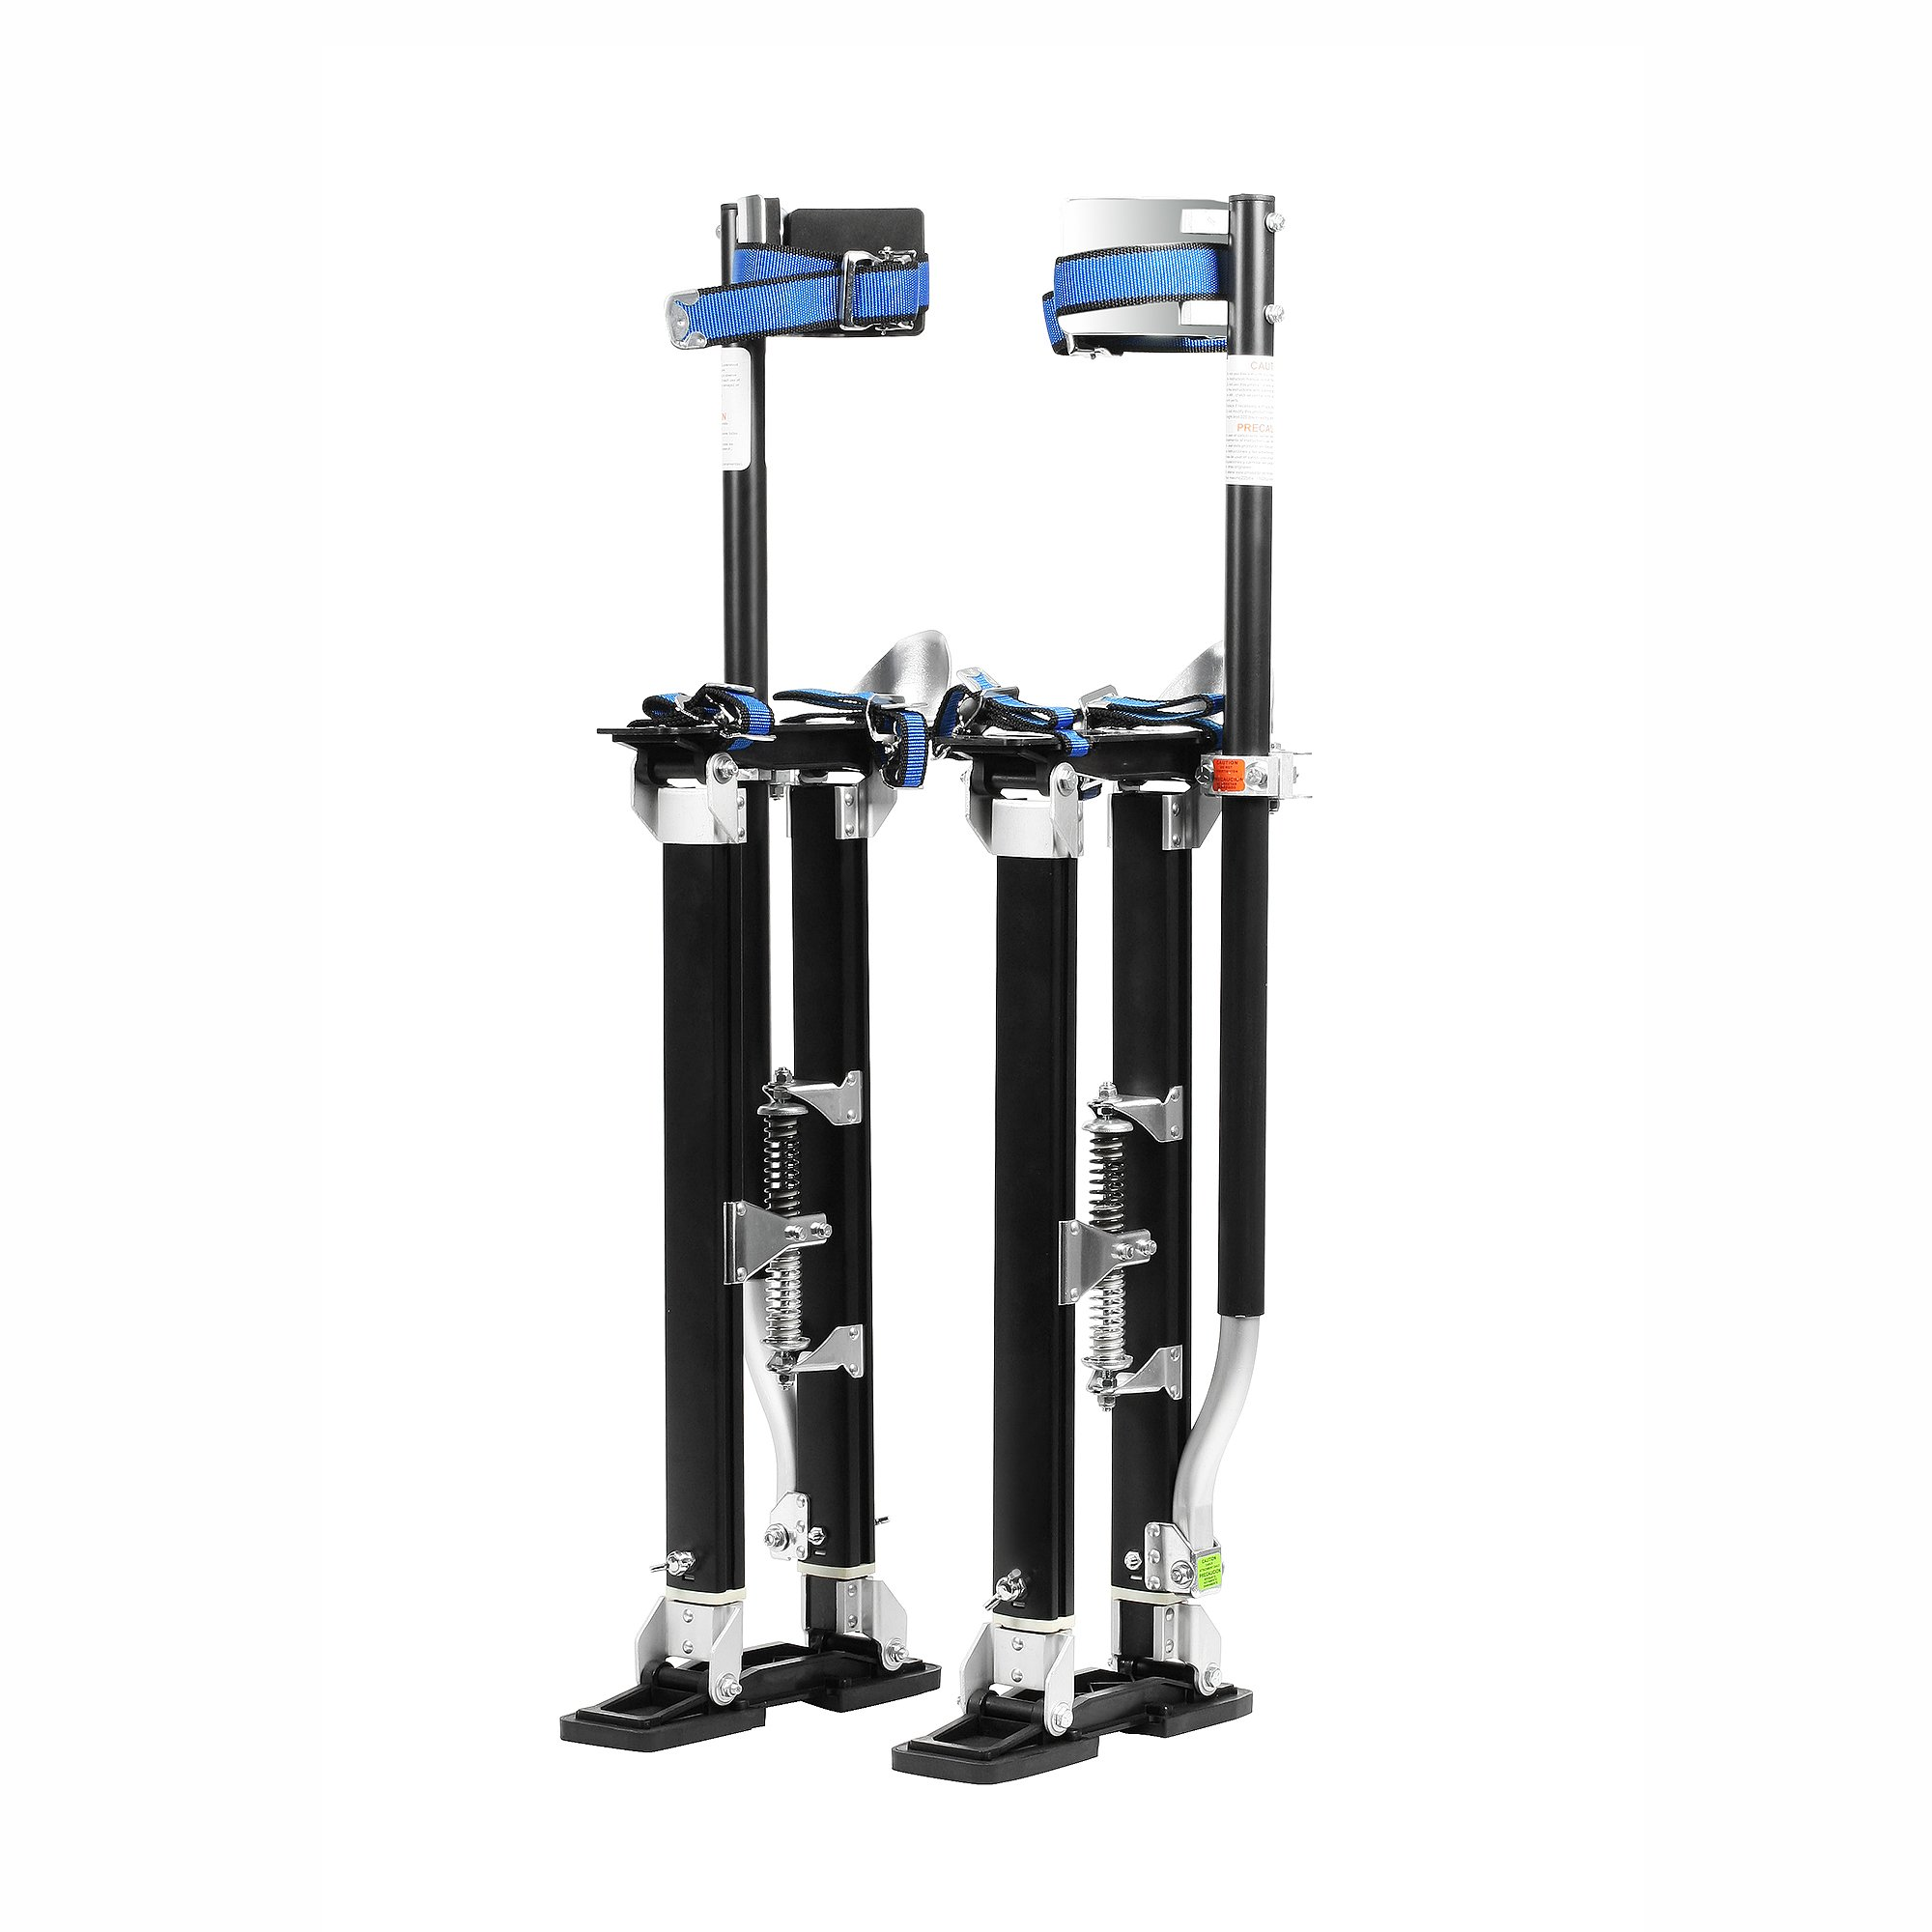 Pentagon Tools 1153 Black MAG Stilts 24-40 Mag Pros Magnesium Drywall Stilts, 40'' Height, 8'' Width, 6'' Length, 228 lb. Load Capacity, Magnesium, Black by Pentagon Tools